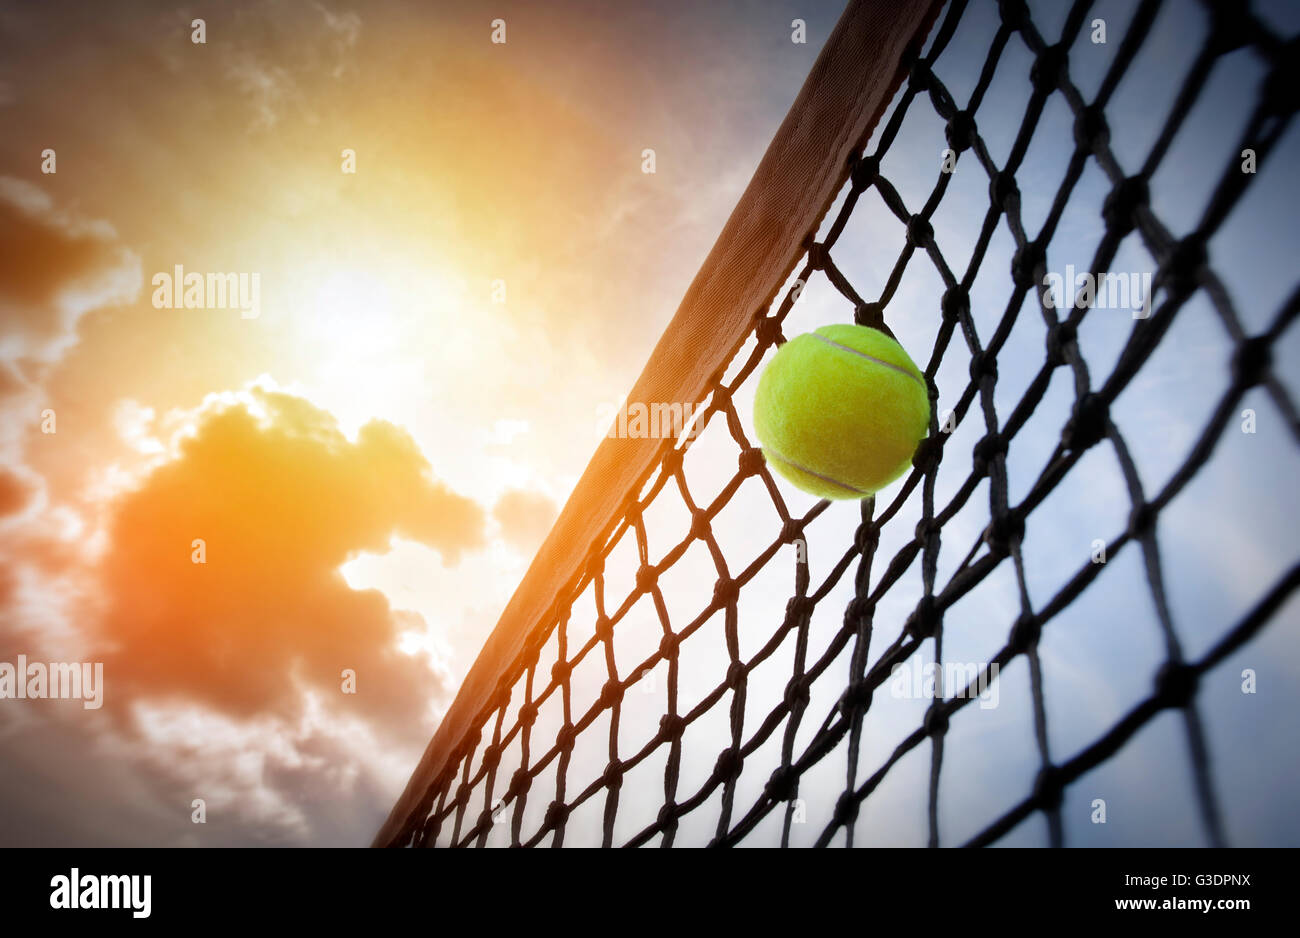 Balle de tennis sur un court de tennis Photo Stock